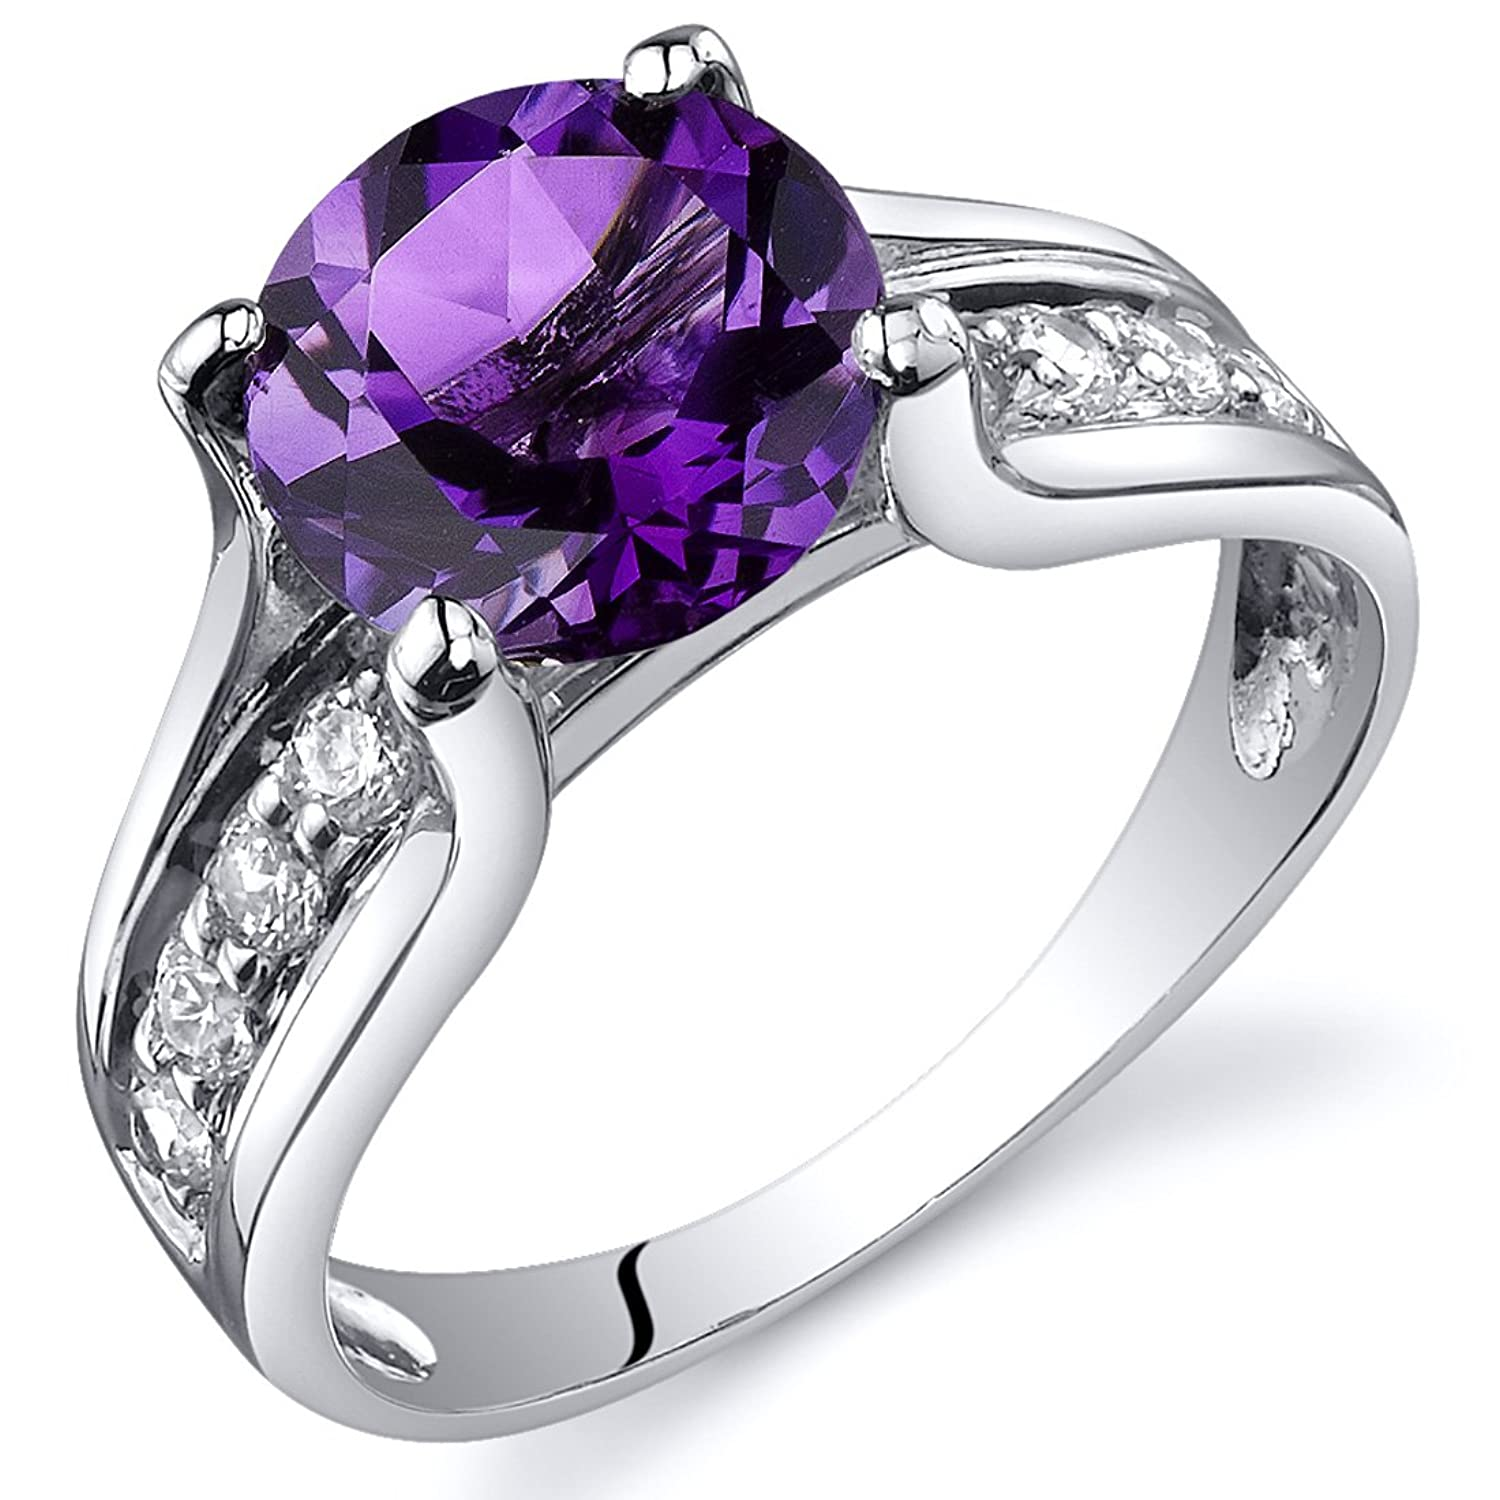 lane white gold amethyst jewelry expo purple retro antique ring item vivid rings diamond vintage ruby